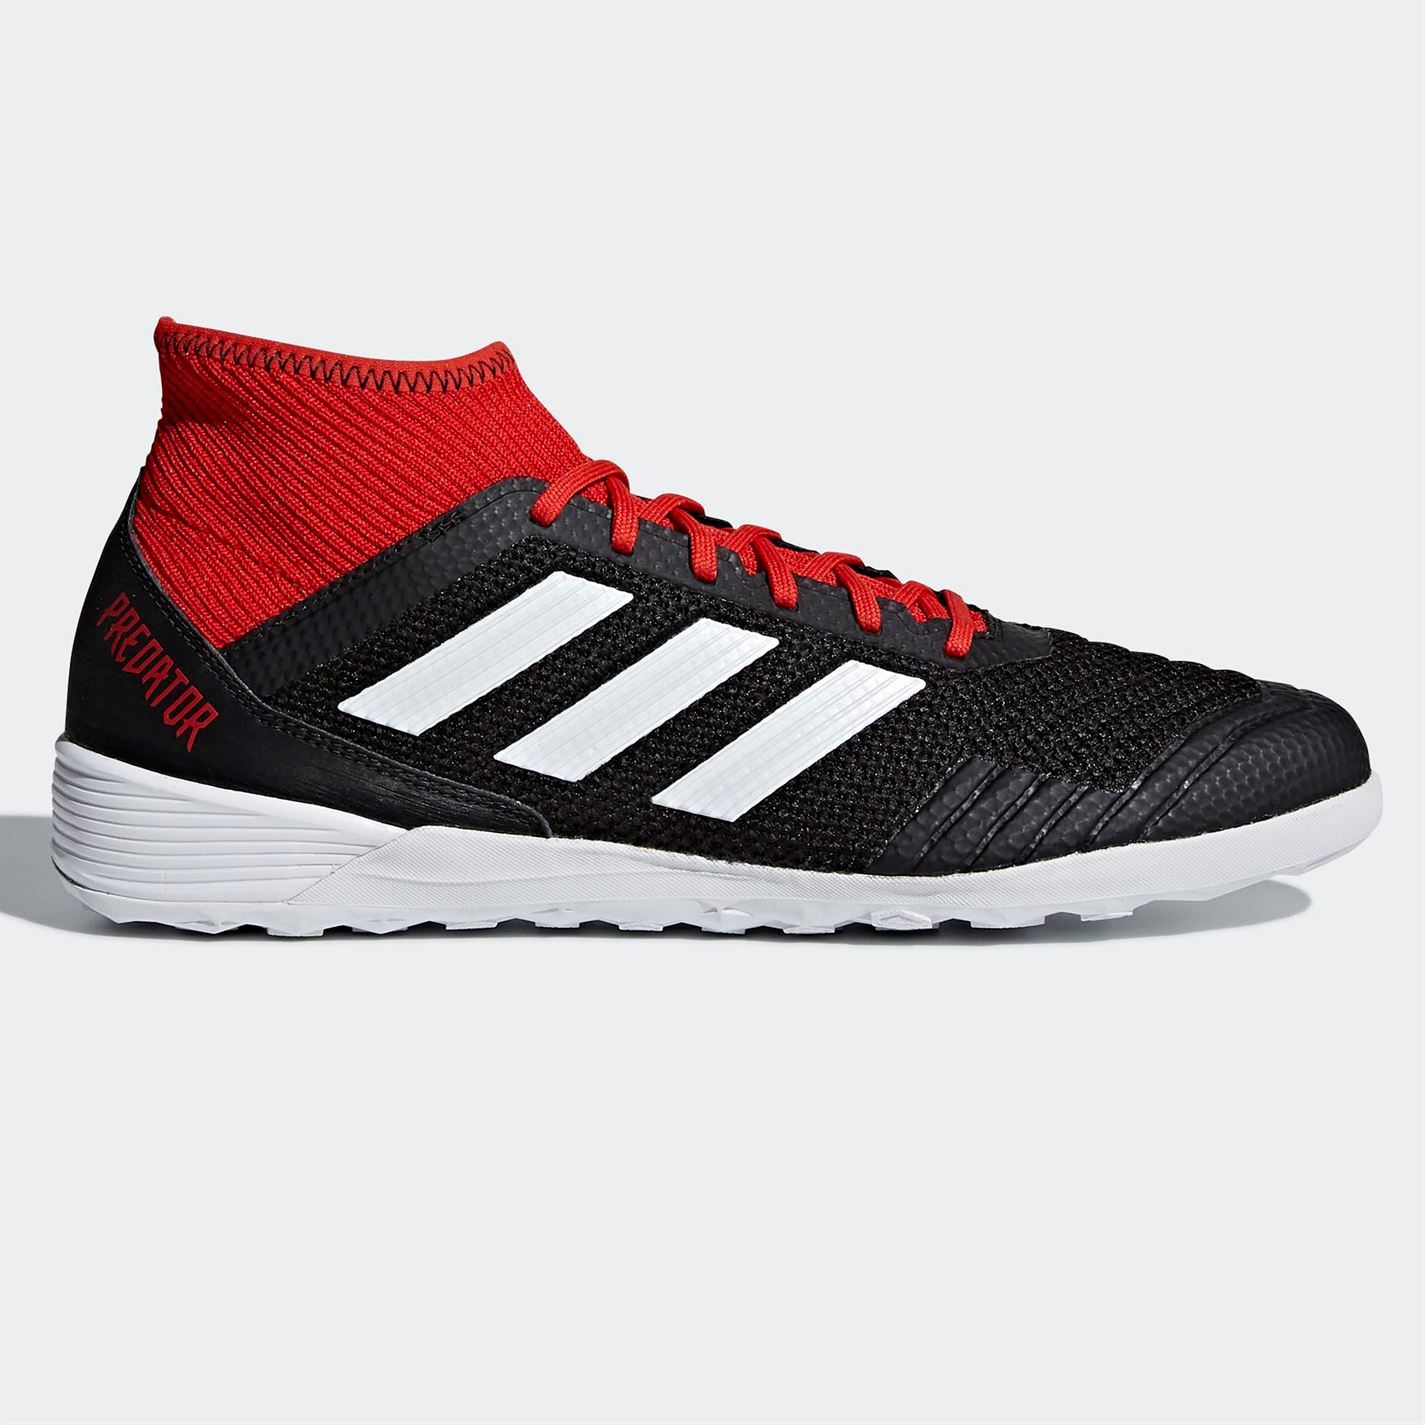 replicas vende bastante agradable Details about adidas Predator Tango 18.3 Indoor Football Trainers Mens  Soccer Futsal Shoes